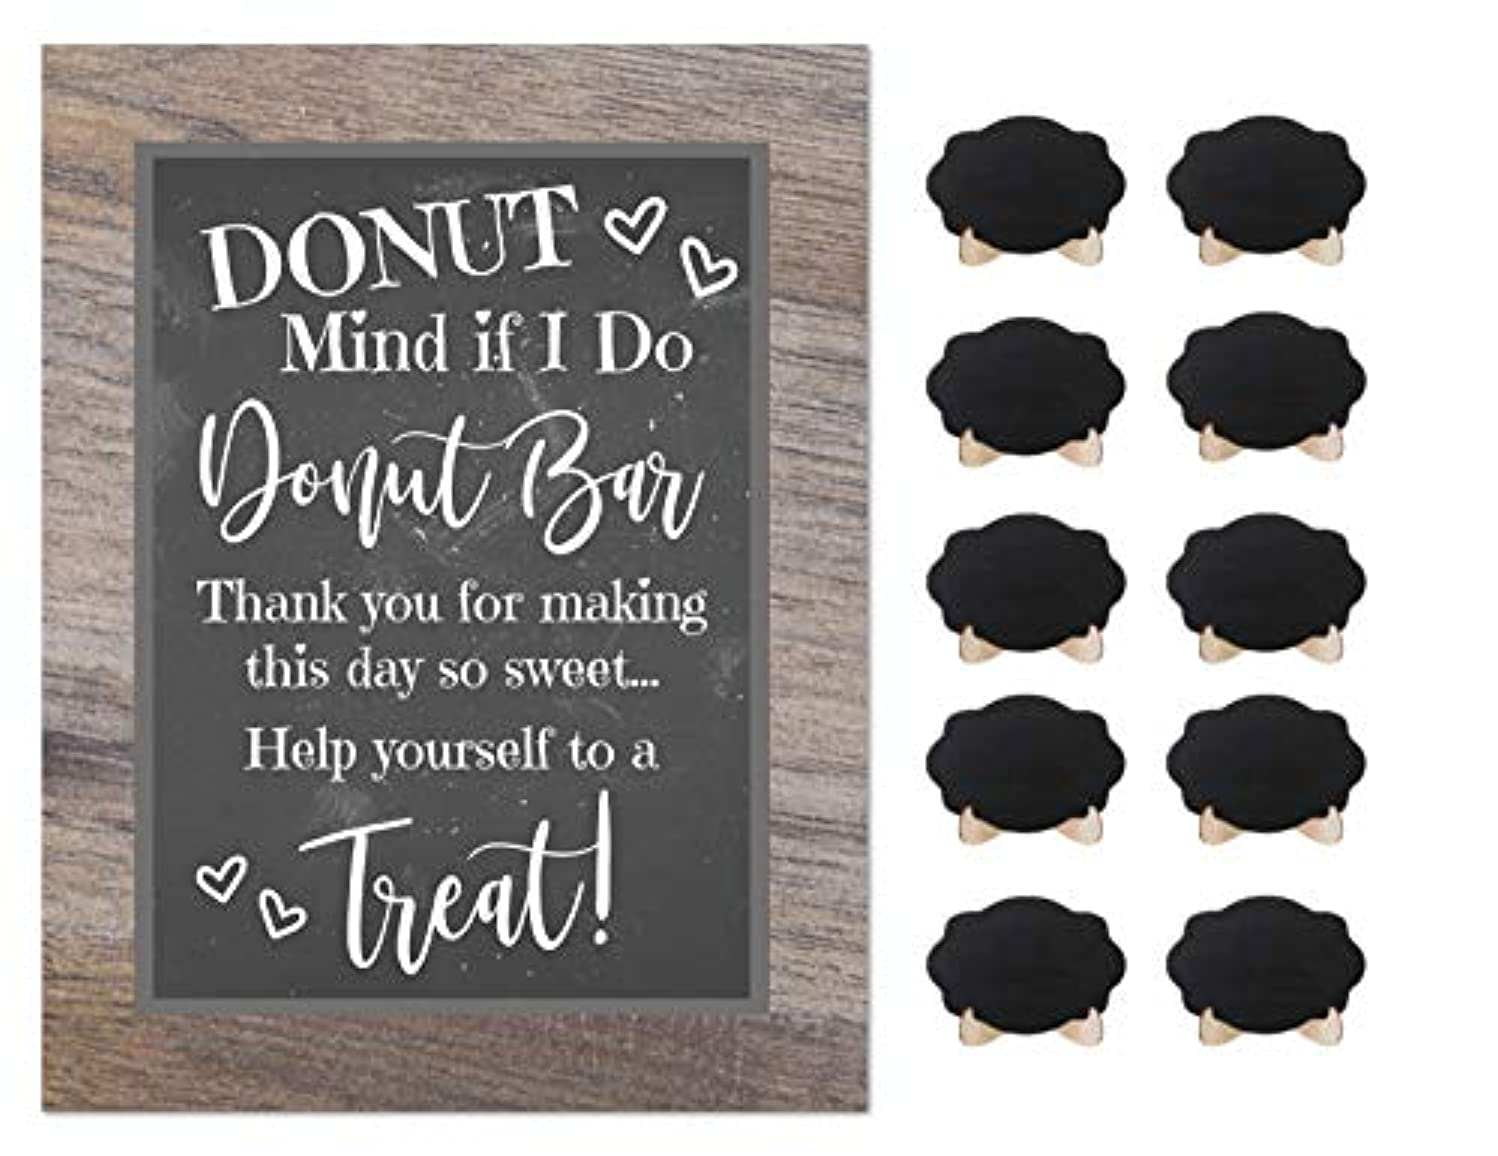 Donut Bar Party Rustic Chalkboard Sign Wedding Shower Buffet Supplies with 10 Small Mini Chalkboards Accessories